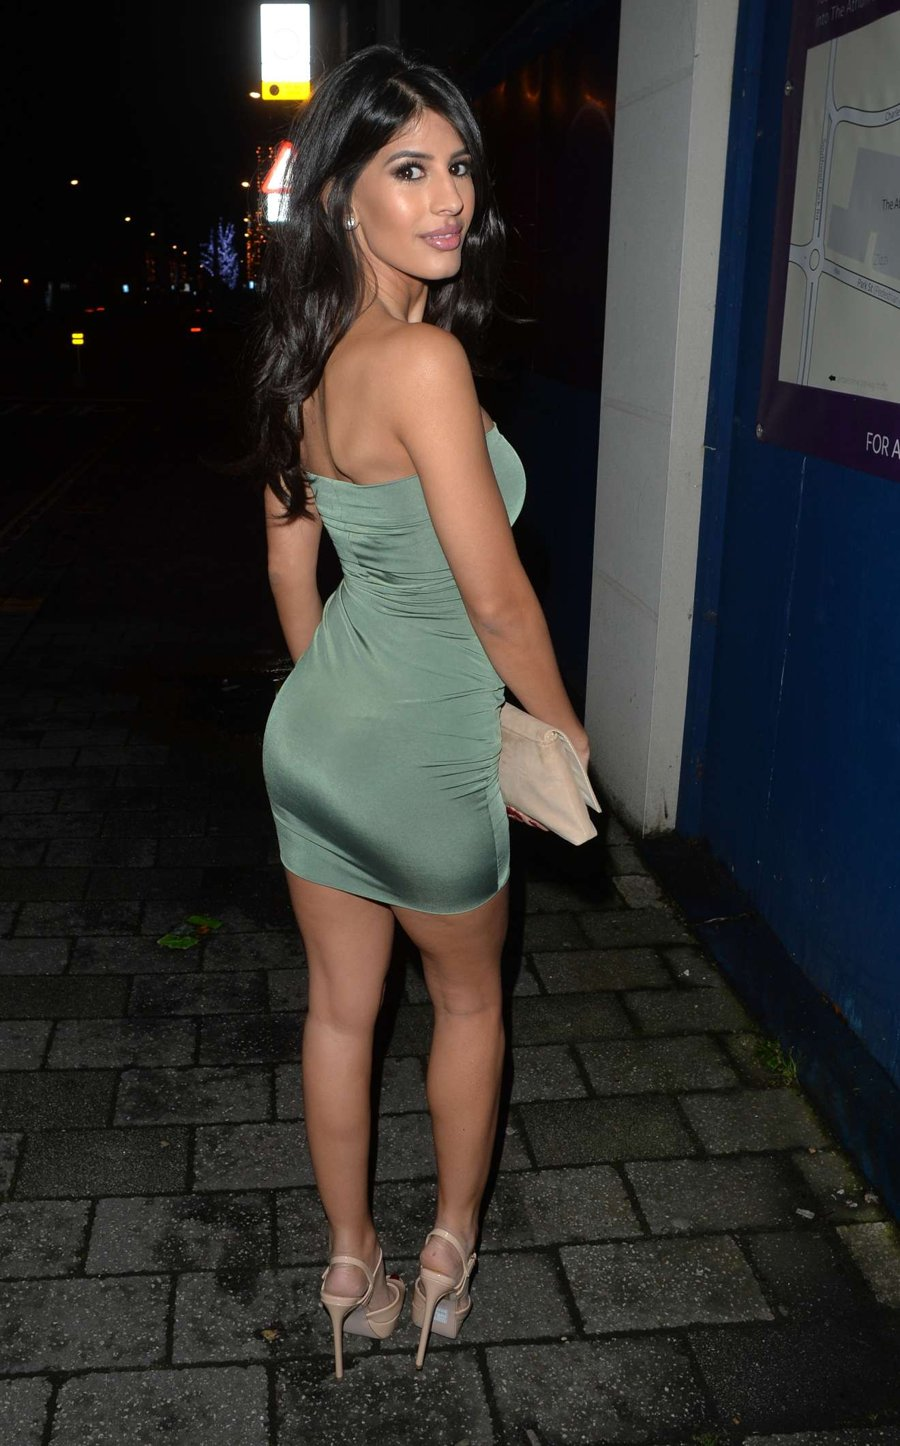 Jasmin Walia Wearing Strapless Mini Dress on New Year's